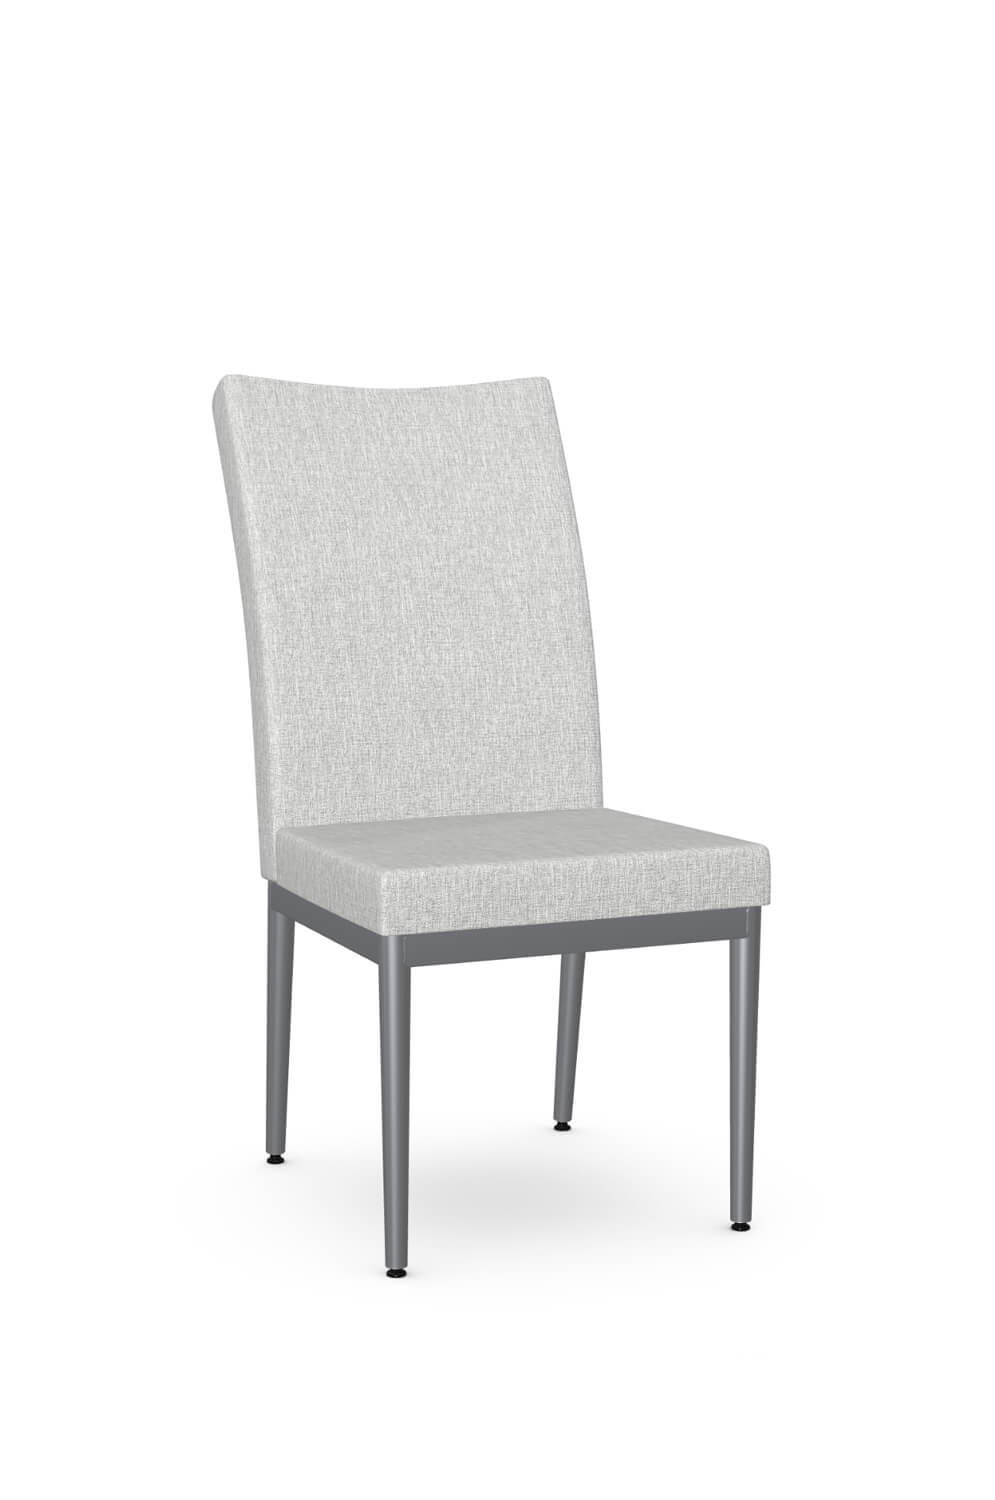 Mitchell Dining Chair with High Backrest